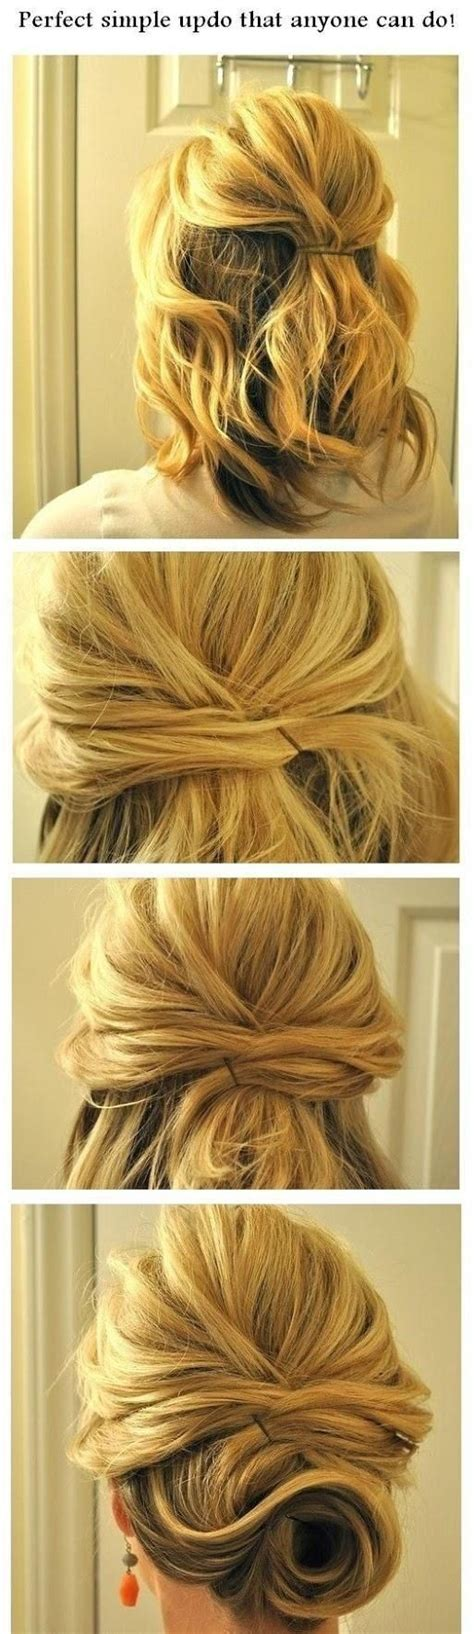 easy updos for short hair step by step 14 easy step by step updo hairstyles tutorials pretty